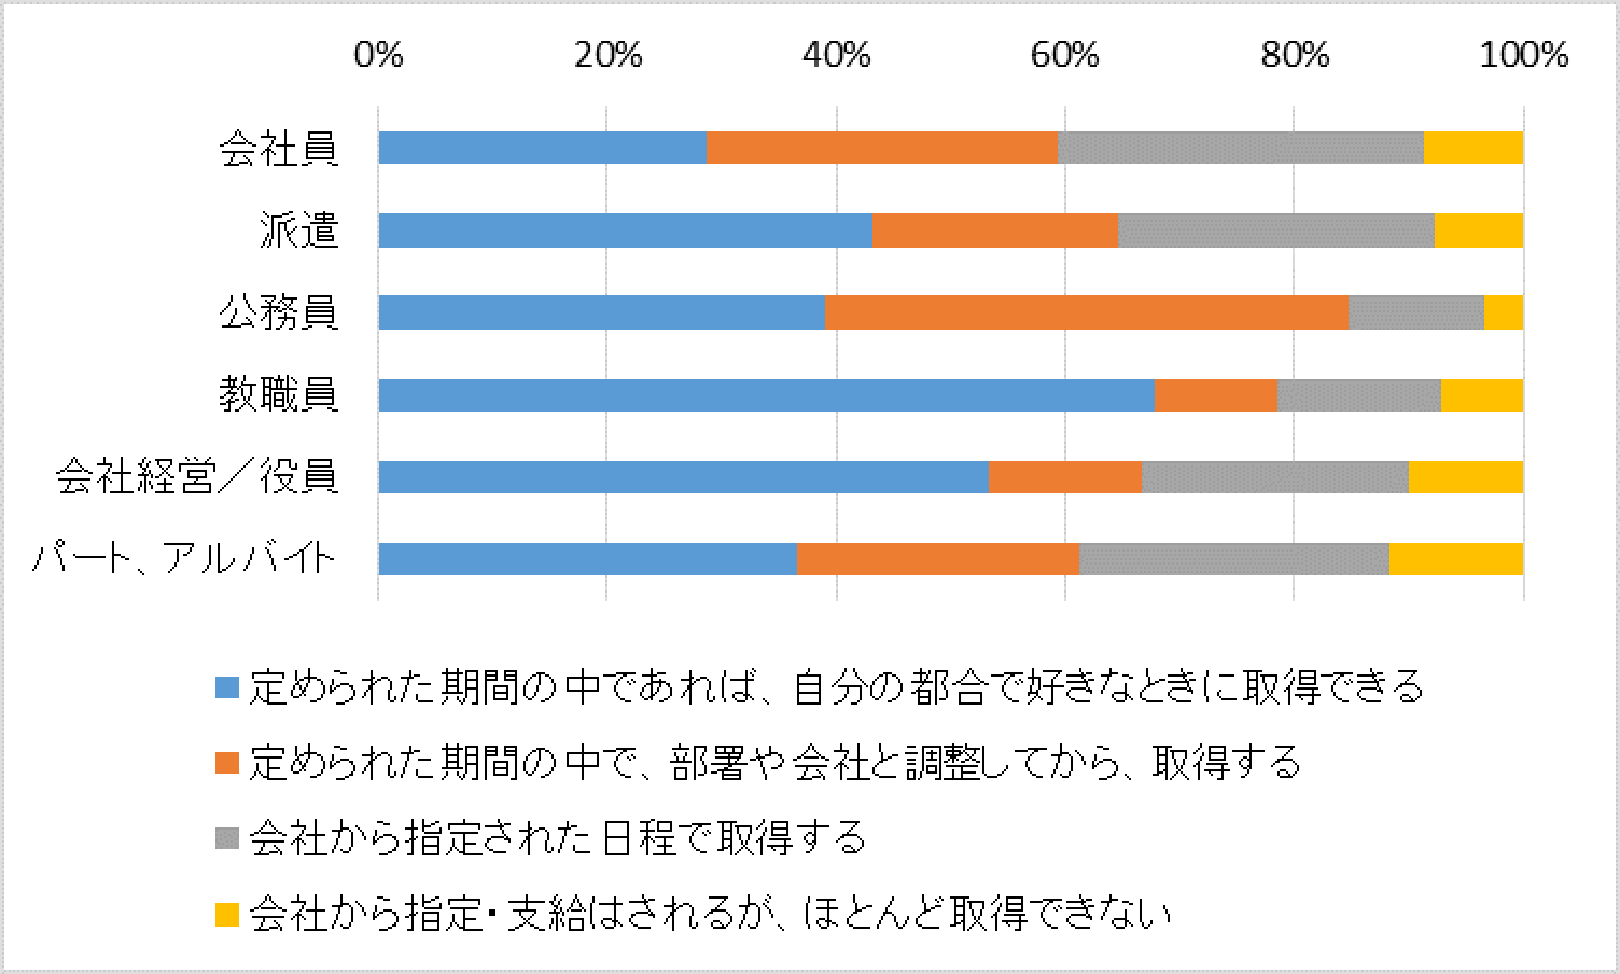 201808-15-fig-02.png